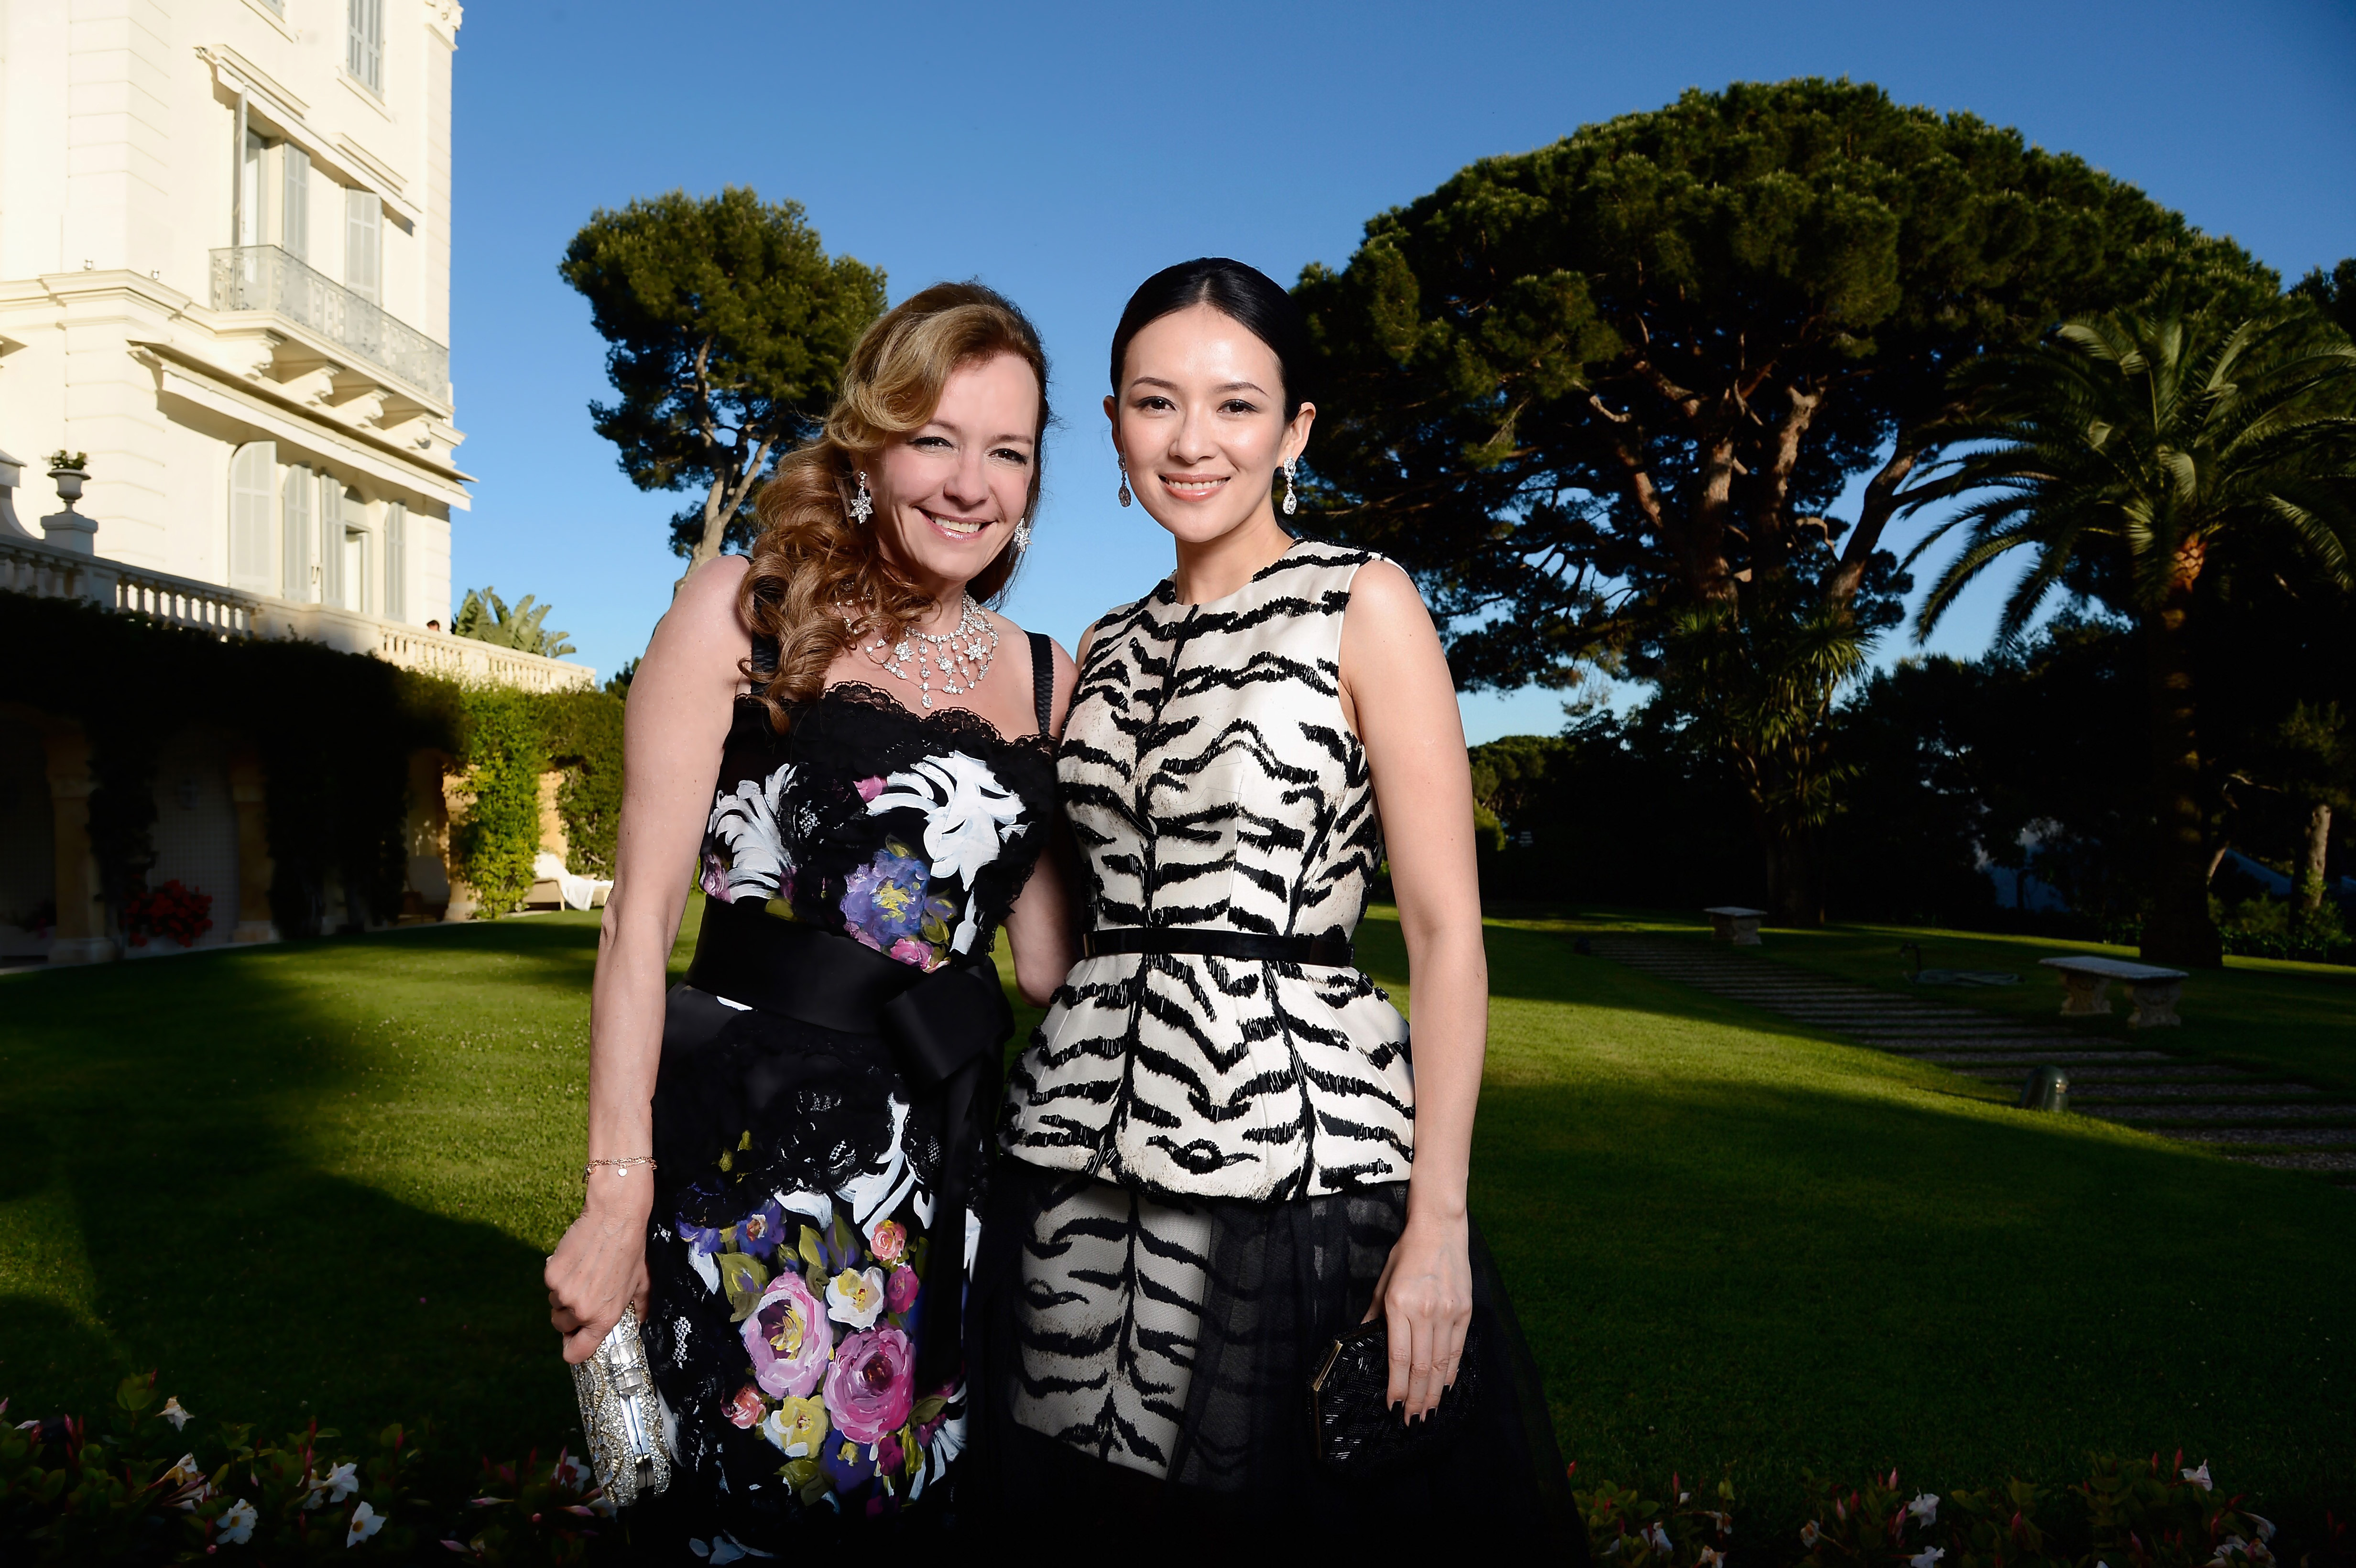 CAP D'ANTIBES, FRANCE - MAY 23: (EXCLUSIVE COVERAGE. HIGHER RATES APPLY) Co-President of Chopard Caroline Scheufele and Zhang Ziyi attend amfAR's 20th Annual Cinema Against AIDS during The 66th Annual Cannes Film Festival at Hotel du Cap-Eden-Roc on May 23, 2013 in Cap d'Antibes, France. (Photo by Pascal Le Segretain/amfAR13/Getty Images for amfAR)